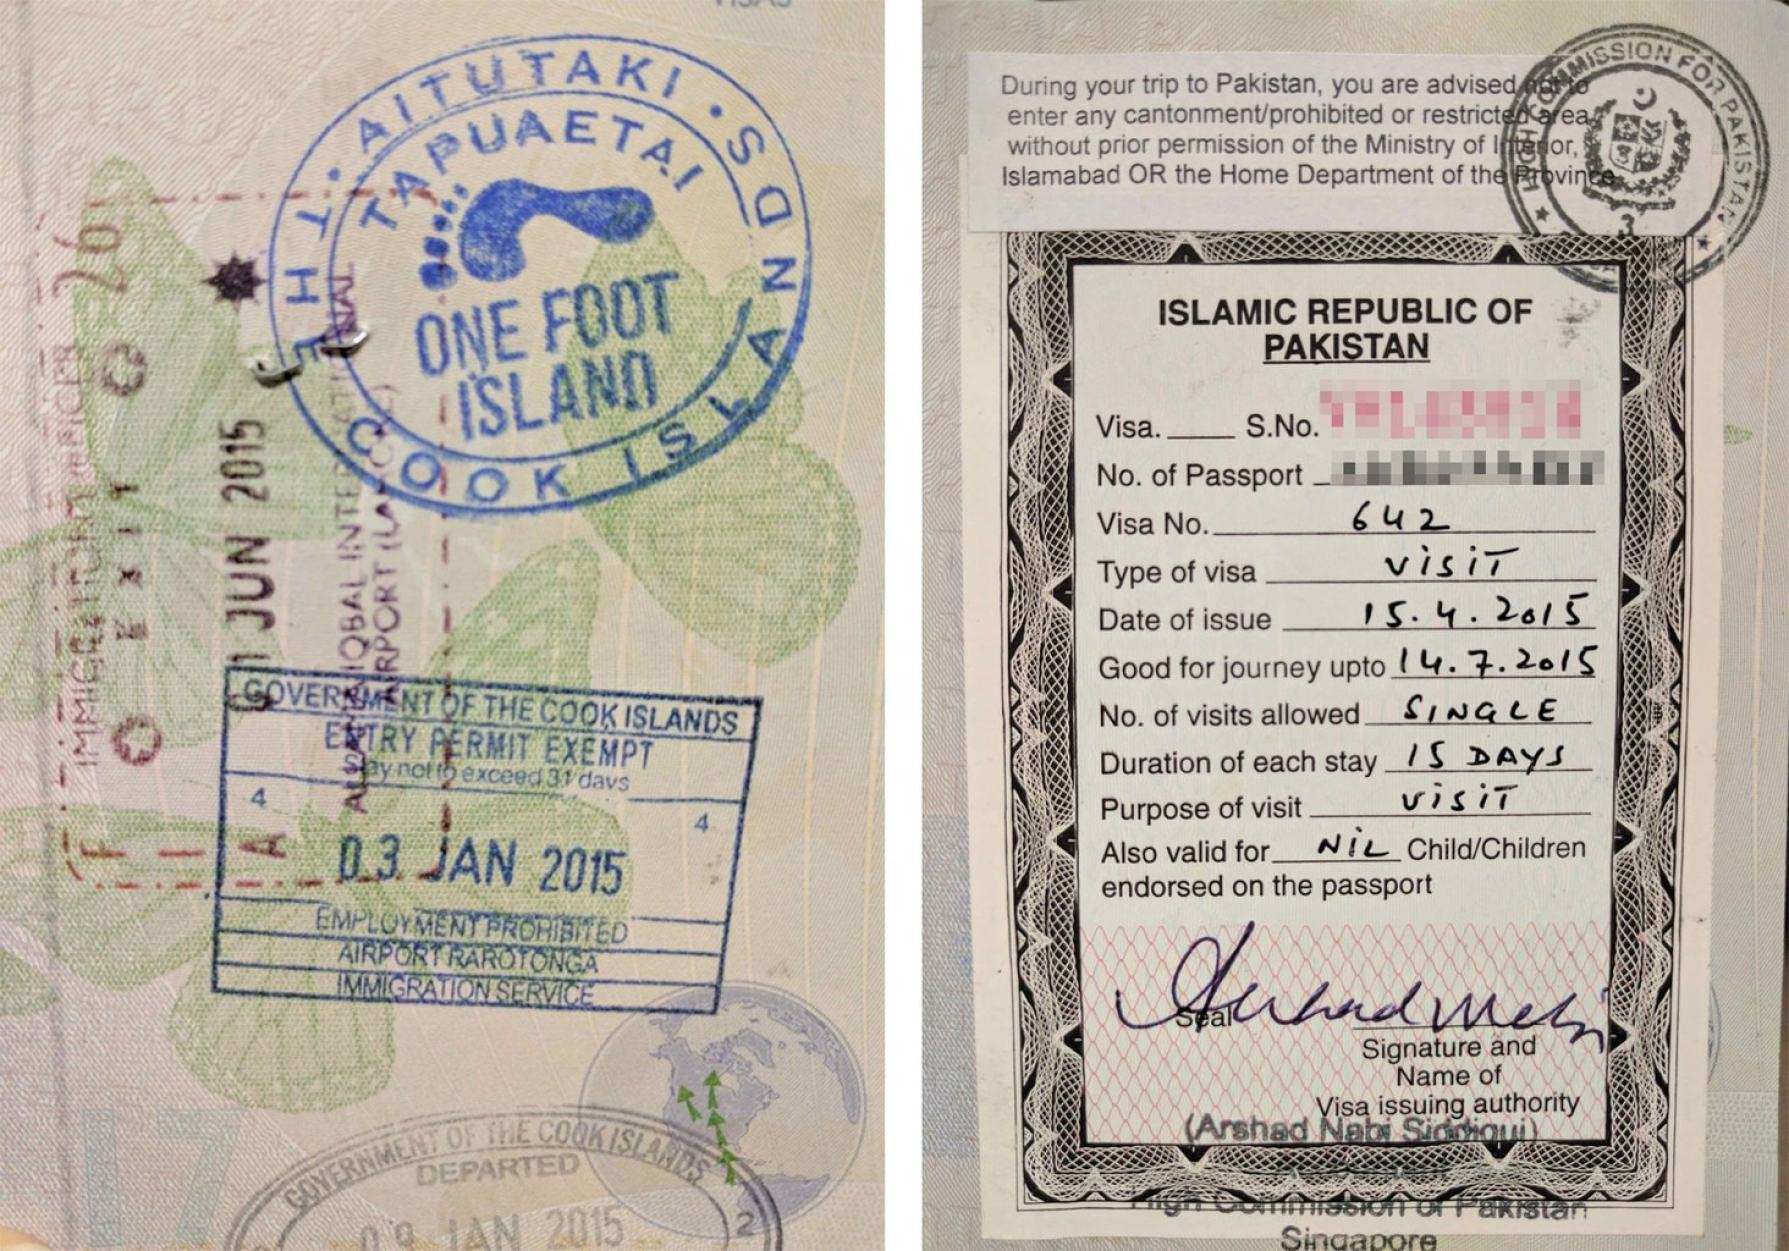 Passport stamps for One Foot Island and Pakistan